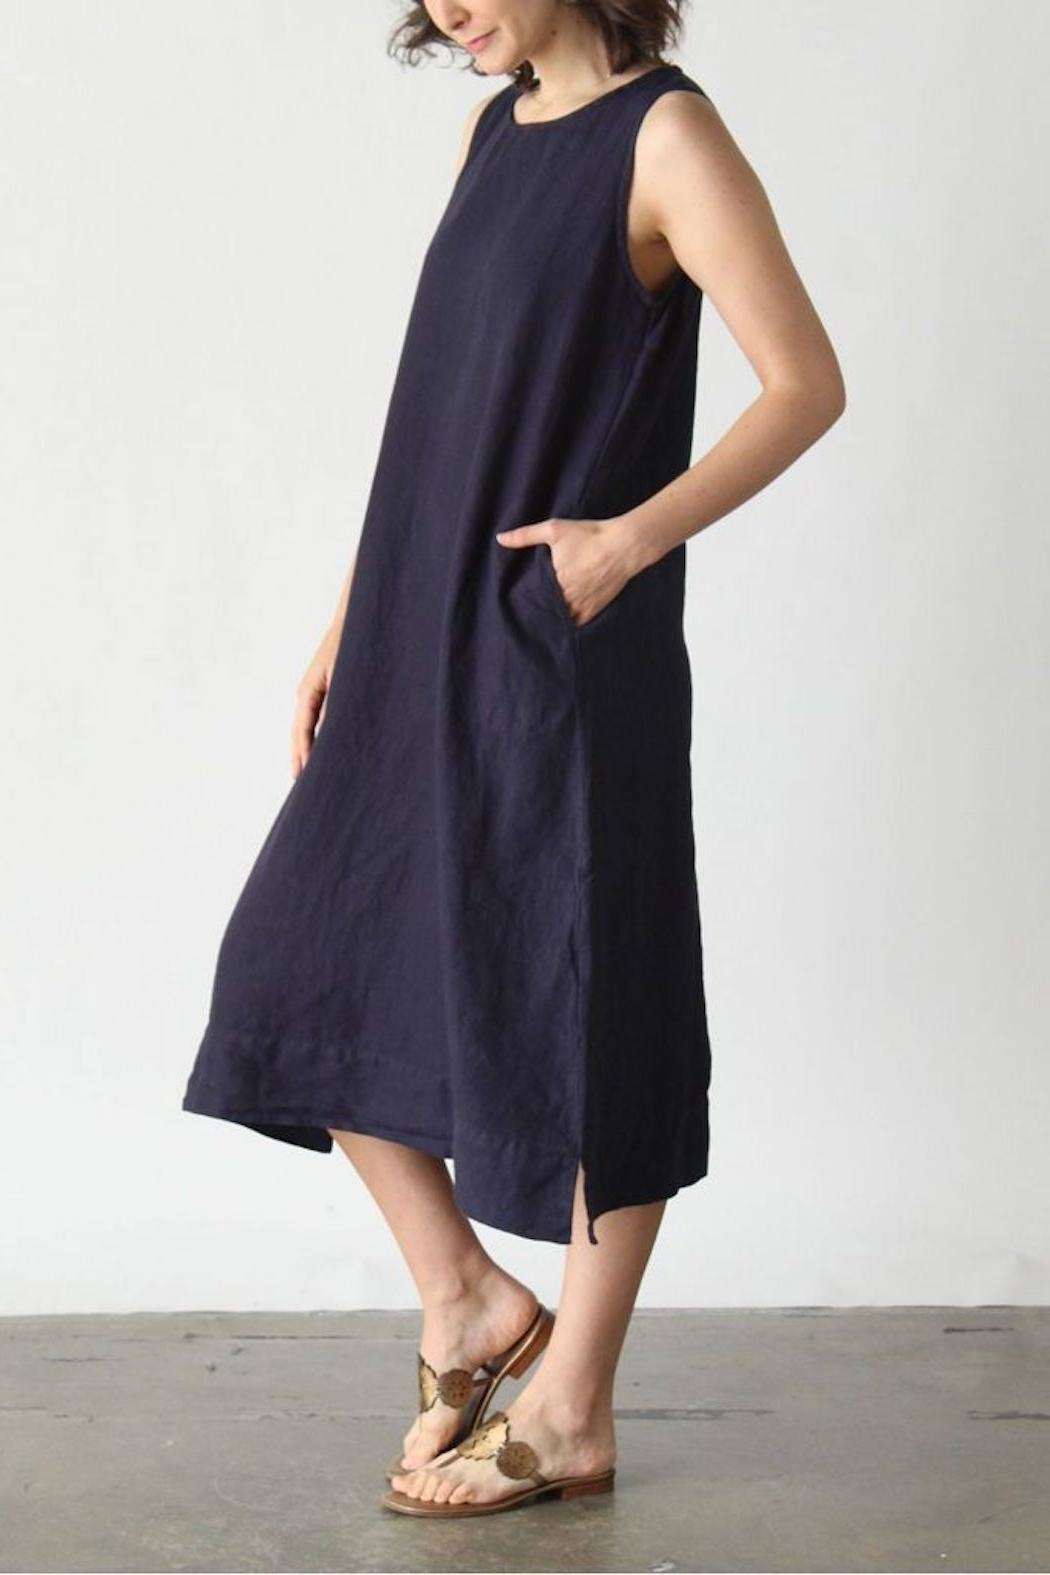 Cut Loose Easy Linen Dress From Hudson Valley By Maria Luisa Shoptiques